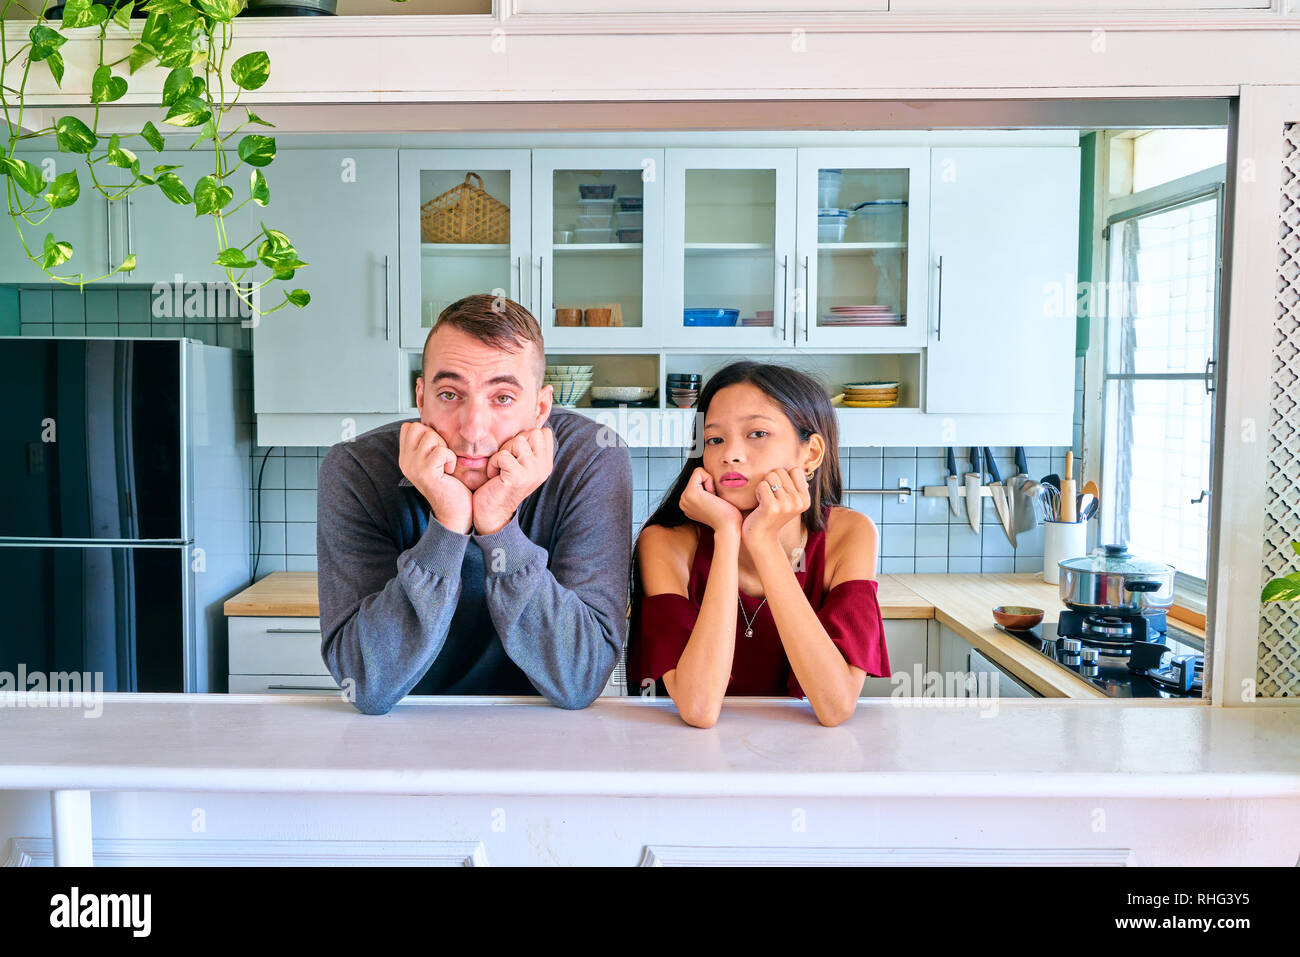 Lovely couple posing - bored, tired and looking at camera - Stock Image